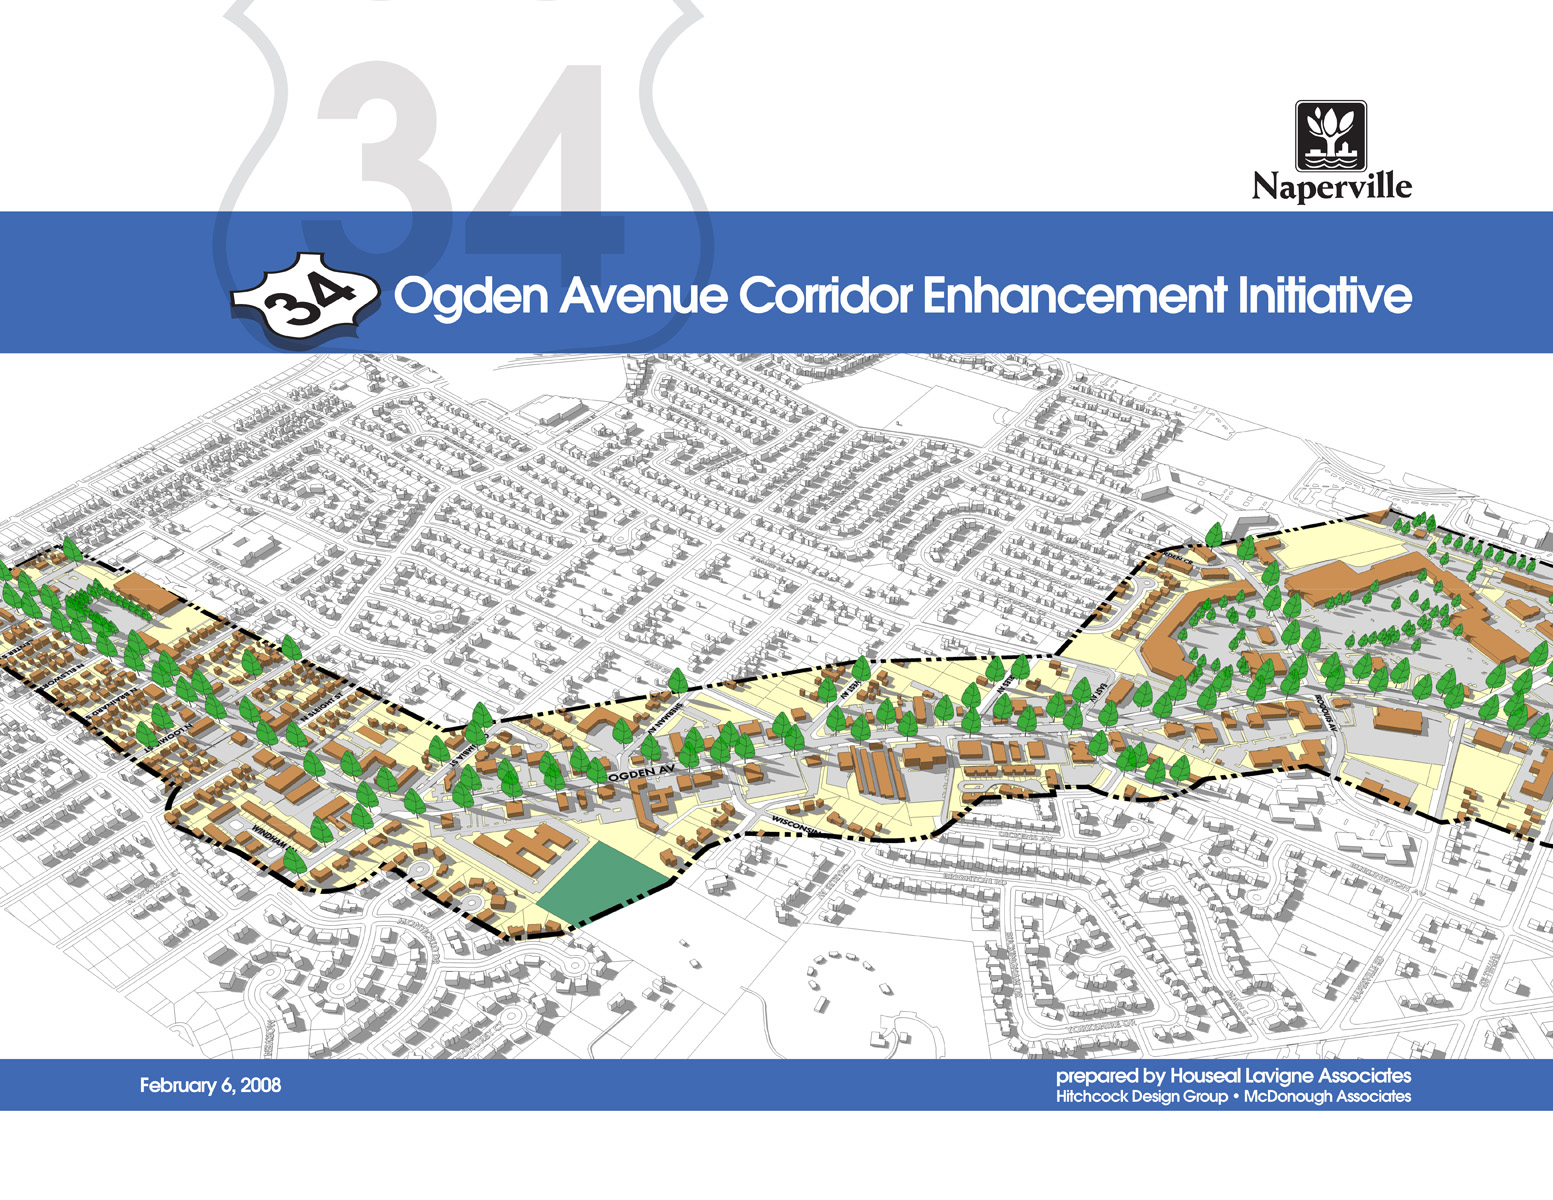 Ogden Avenue Corridor Enhancement Initiative